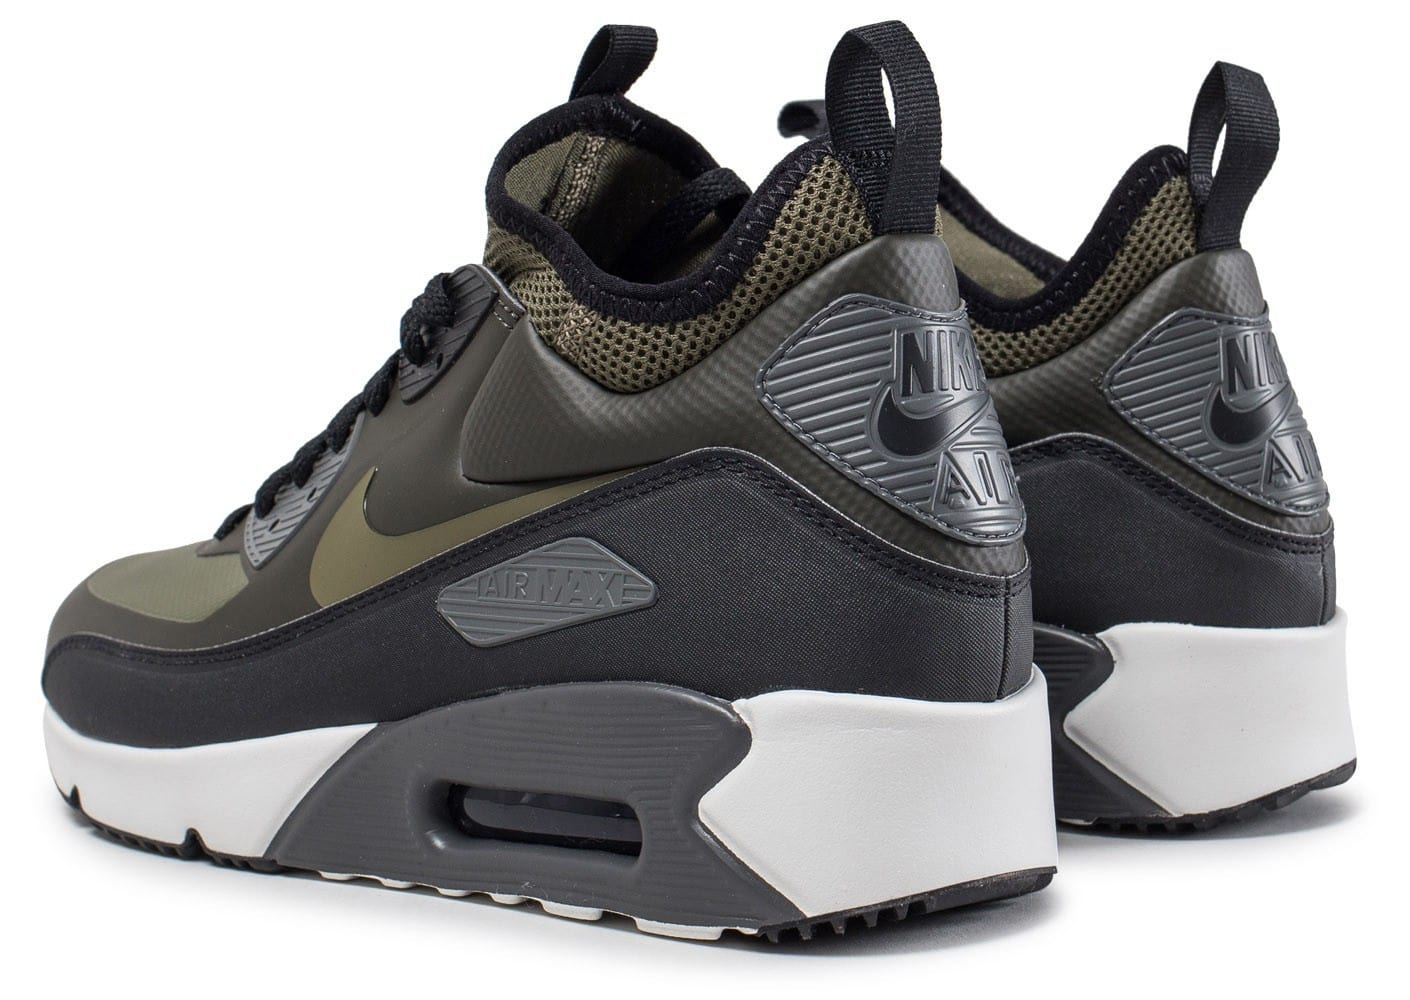 nike air max 90 ultra mid winter chaussures homme chausport. Black Bedroom Furniture Sets. Home Design Ideas